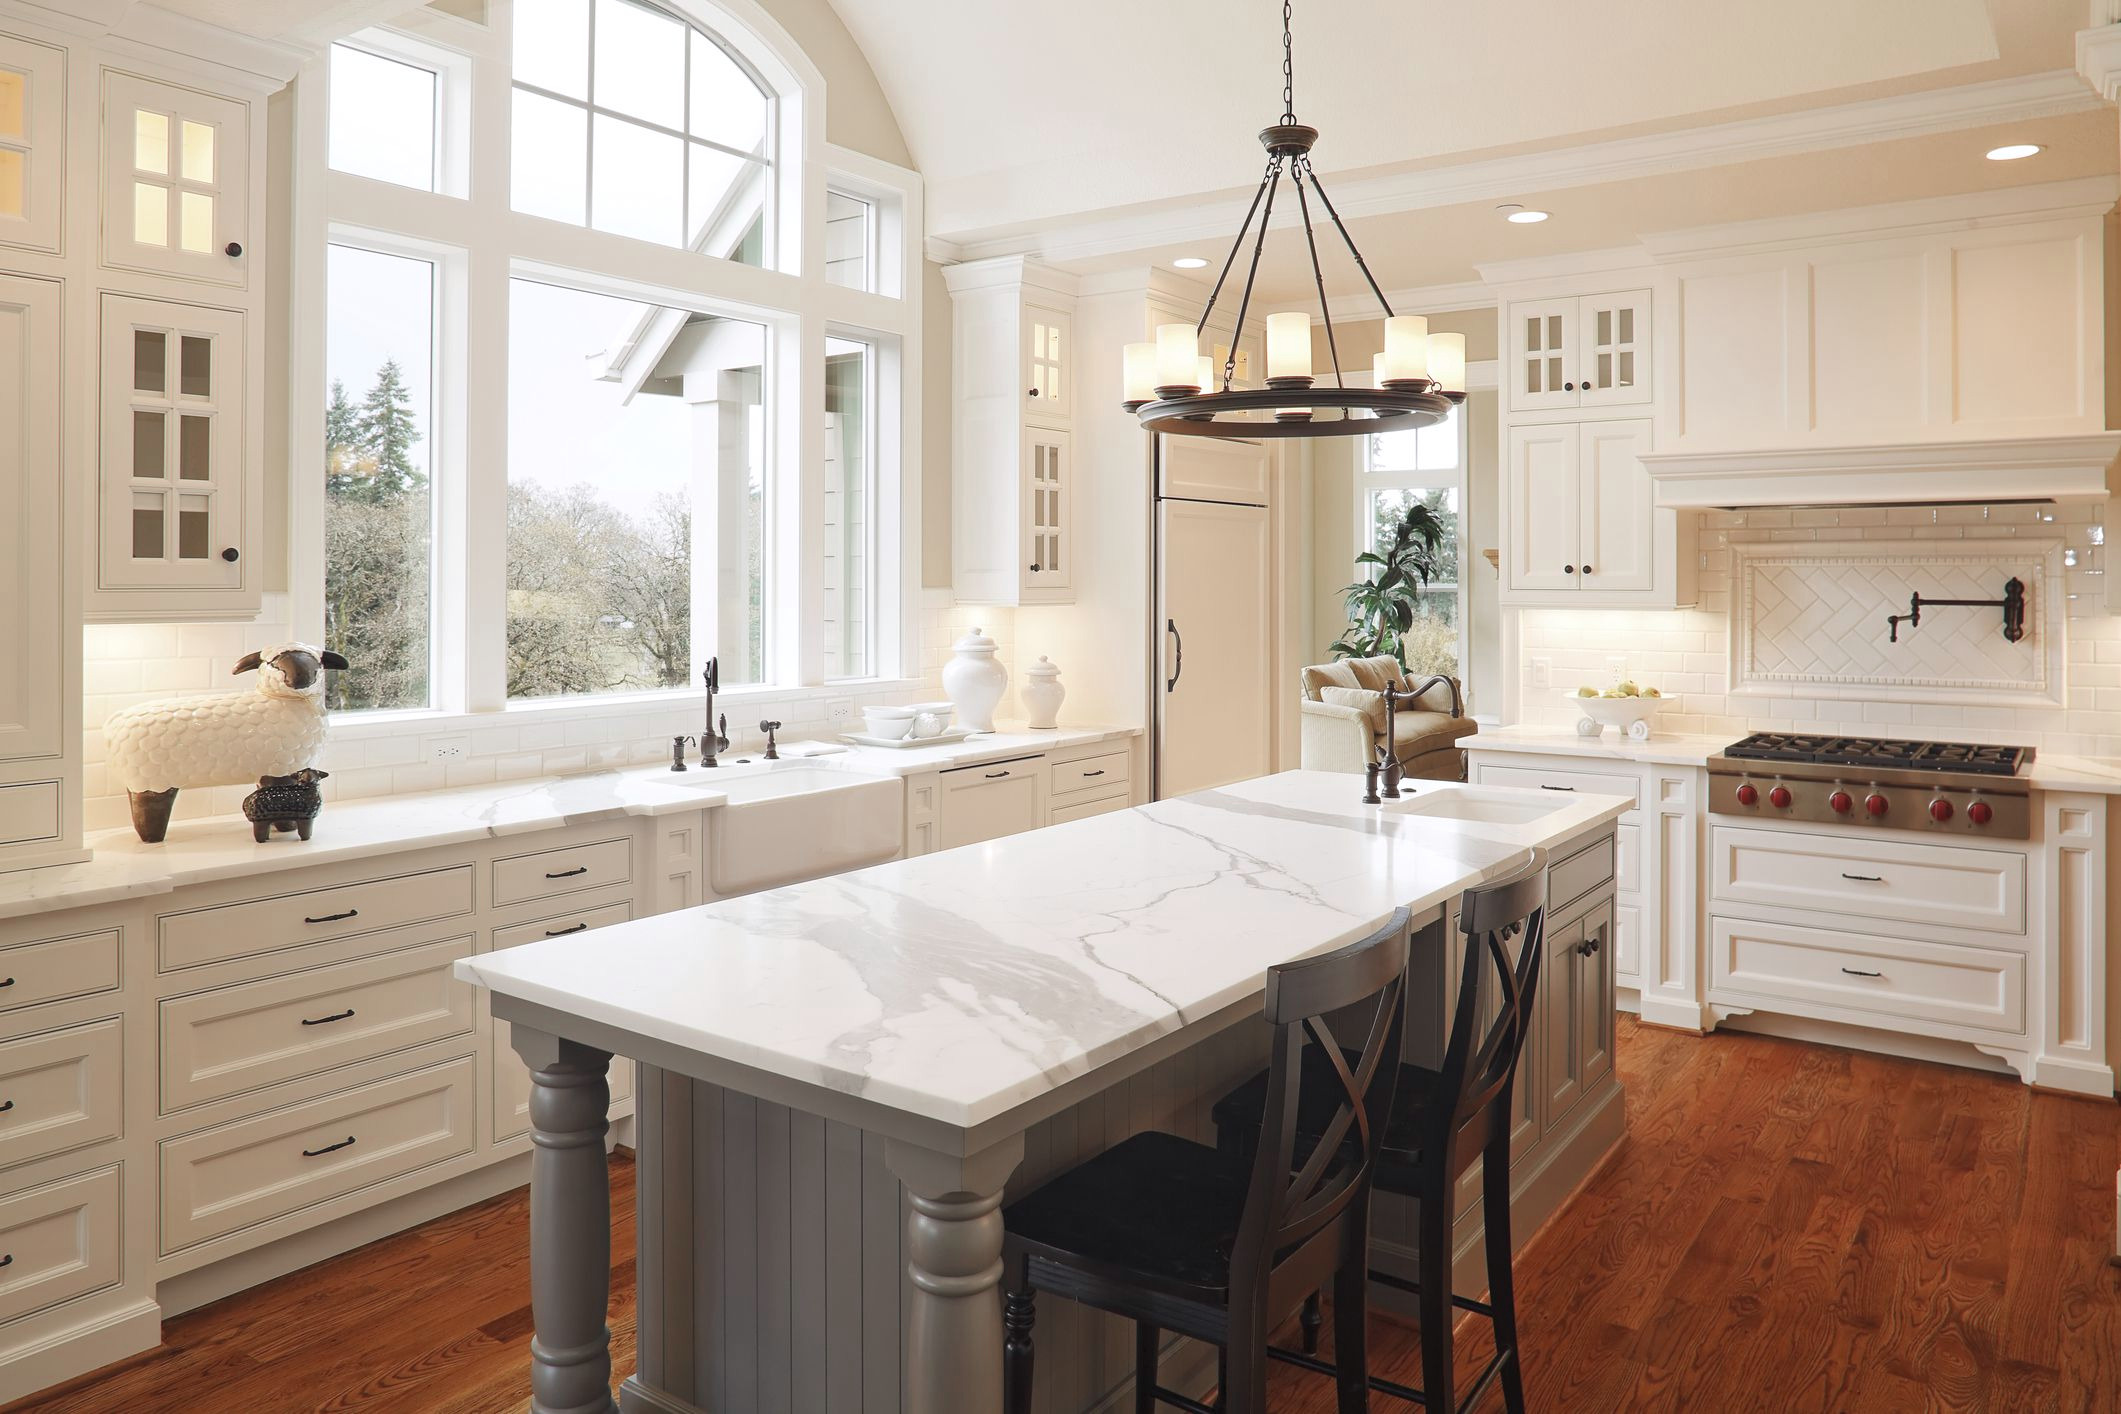 glass kitchen cabinet doors for sale Best of New Kitchen Cabinets Pictures